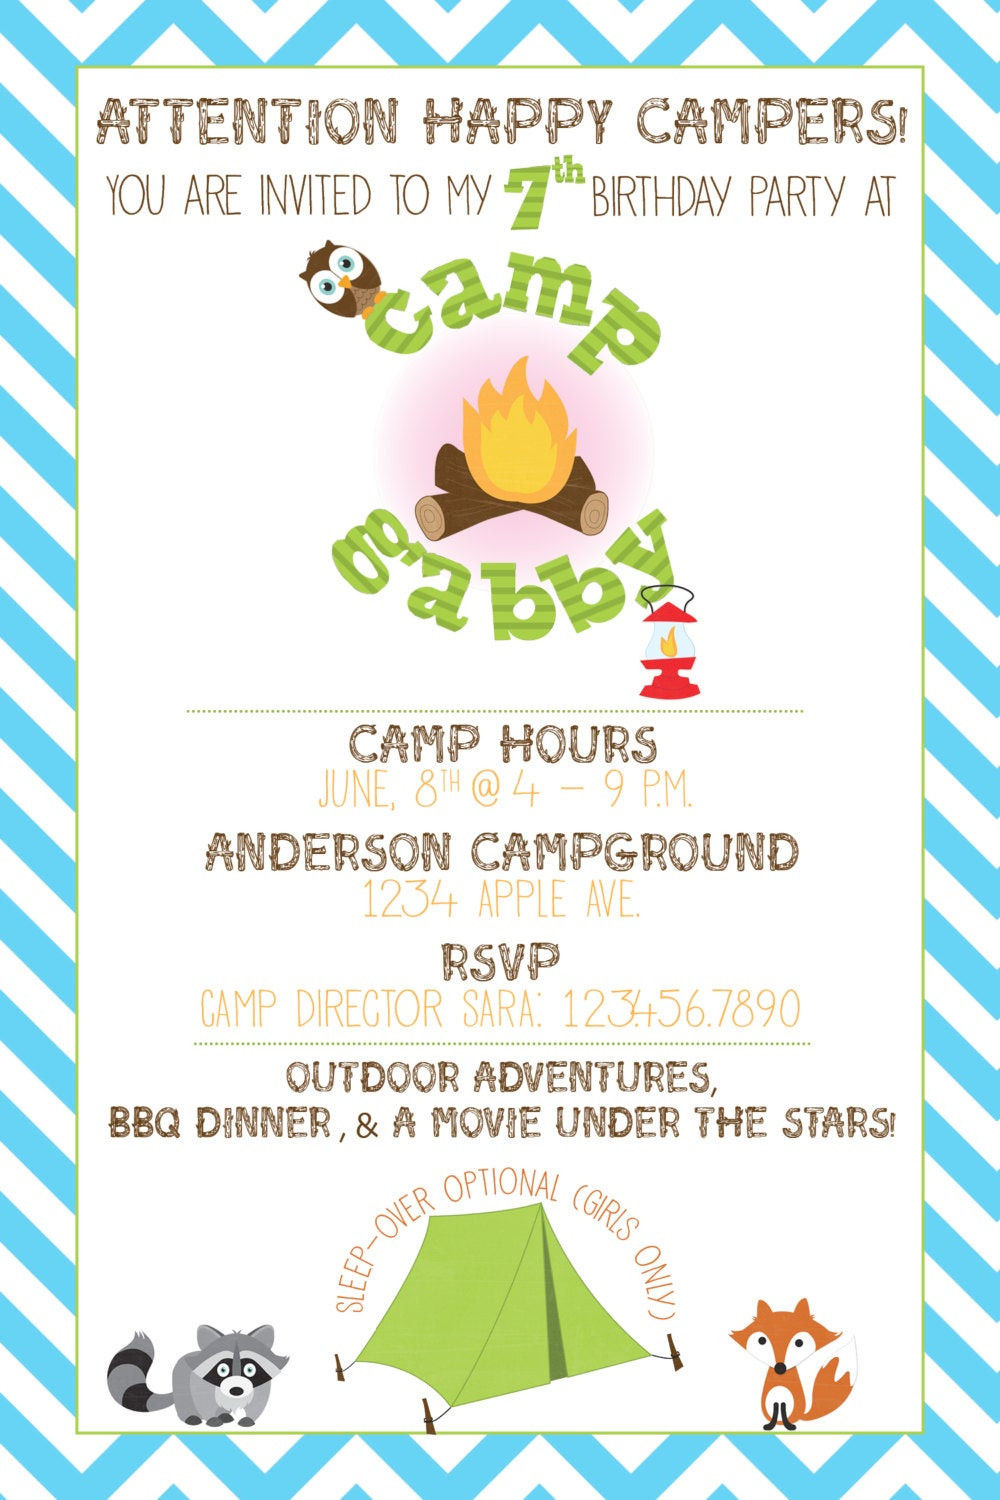 Camping Themed Birthday Invitations Beautiful Camping Theme Party Invitation Printable